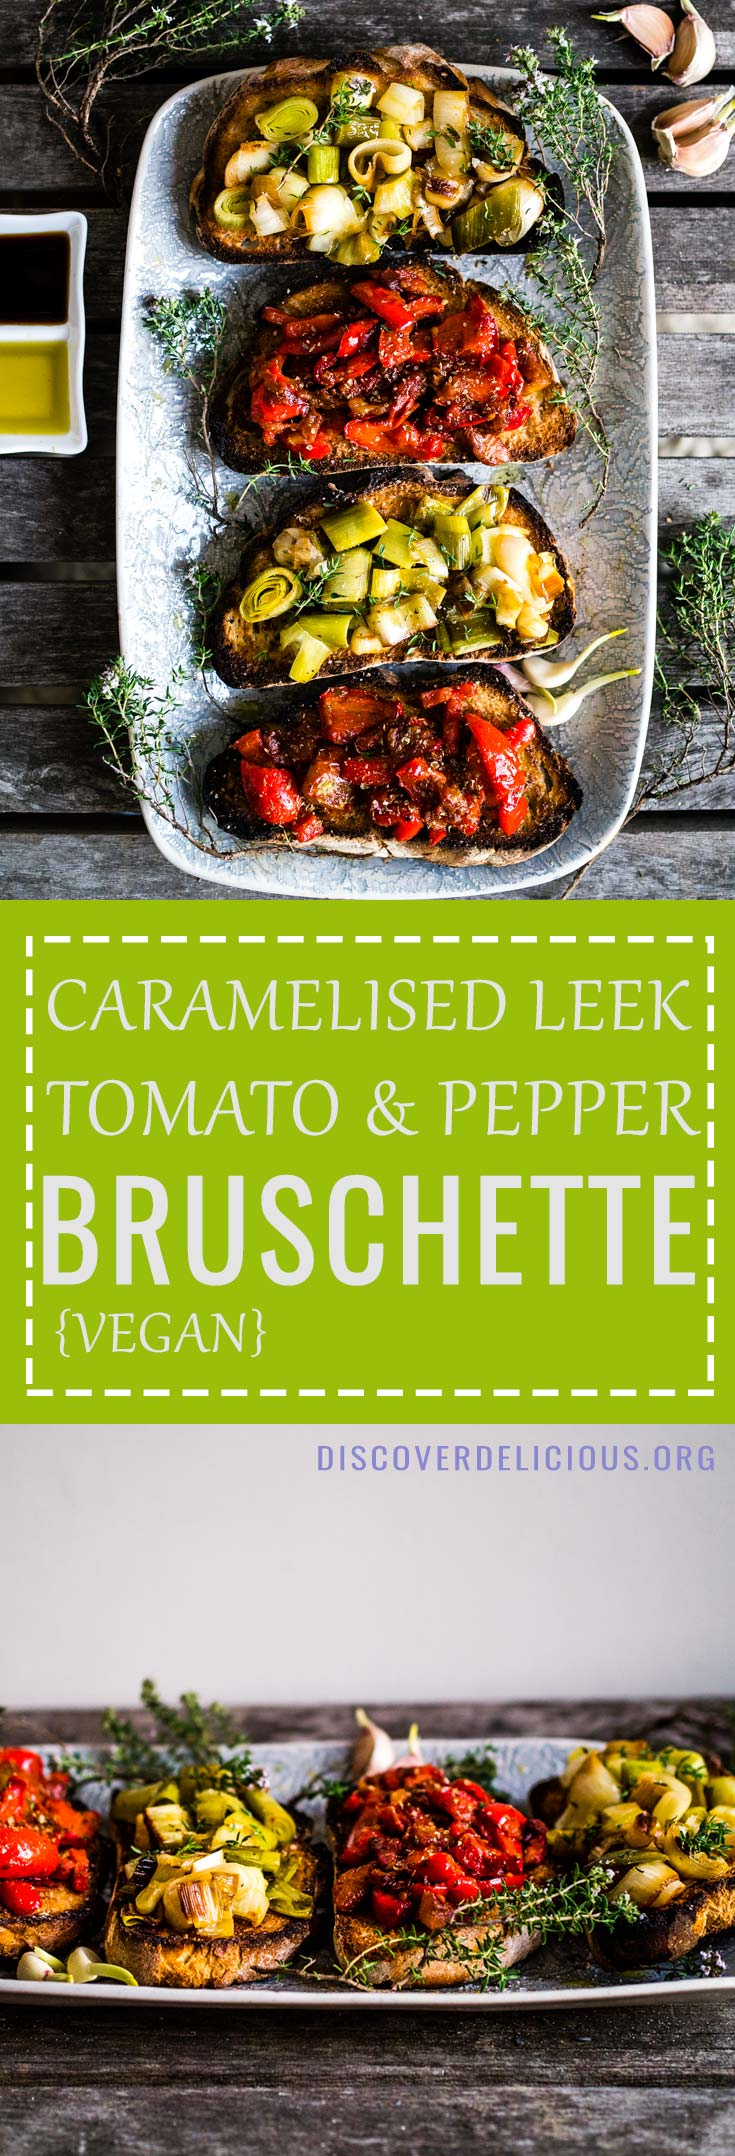 Crunchy & delicious bruschetta w/ caramelised leeks and sauteed tomatoes. Perfect for a starter or summer main! 100% vegan, too | Discover Delicious | www.discoverdelicious.org | Vegan bruschette  #toast #toasts #bread #vegetables #recipe #recipes #summer #meal